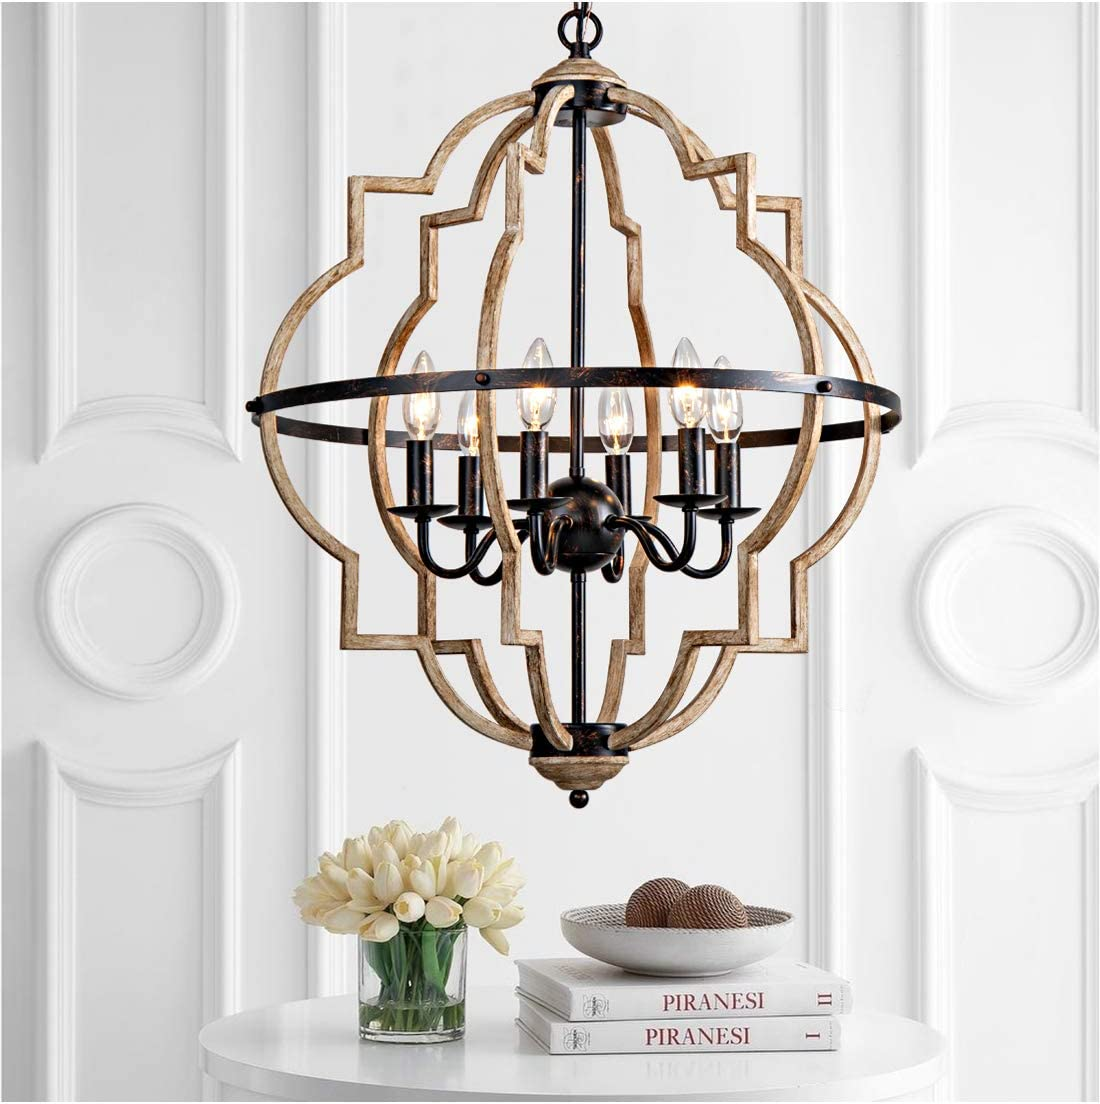 Rustic Chandelier,Classy Farmhouse Pendant Light,Vintage Iron 6-Light Orb Chandeliers, Stardust Oak Finished Pendant Lighting,Ceiling Hanging Light Fixtures for Dining Room,Bedroom,Living Room,Foyer